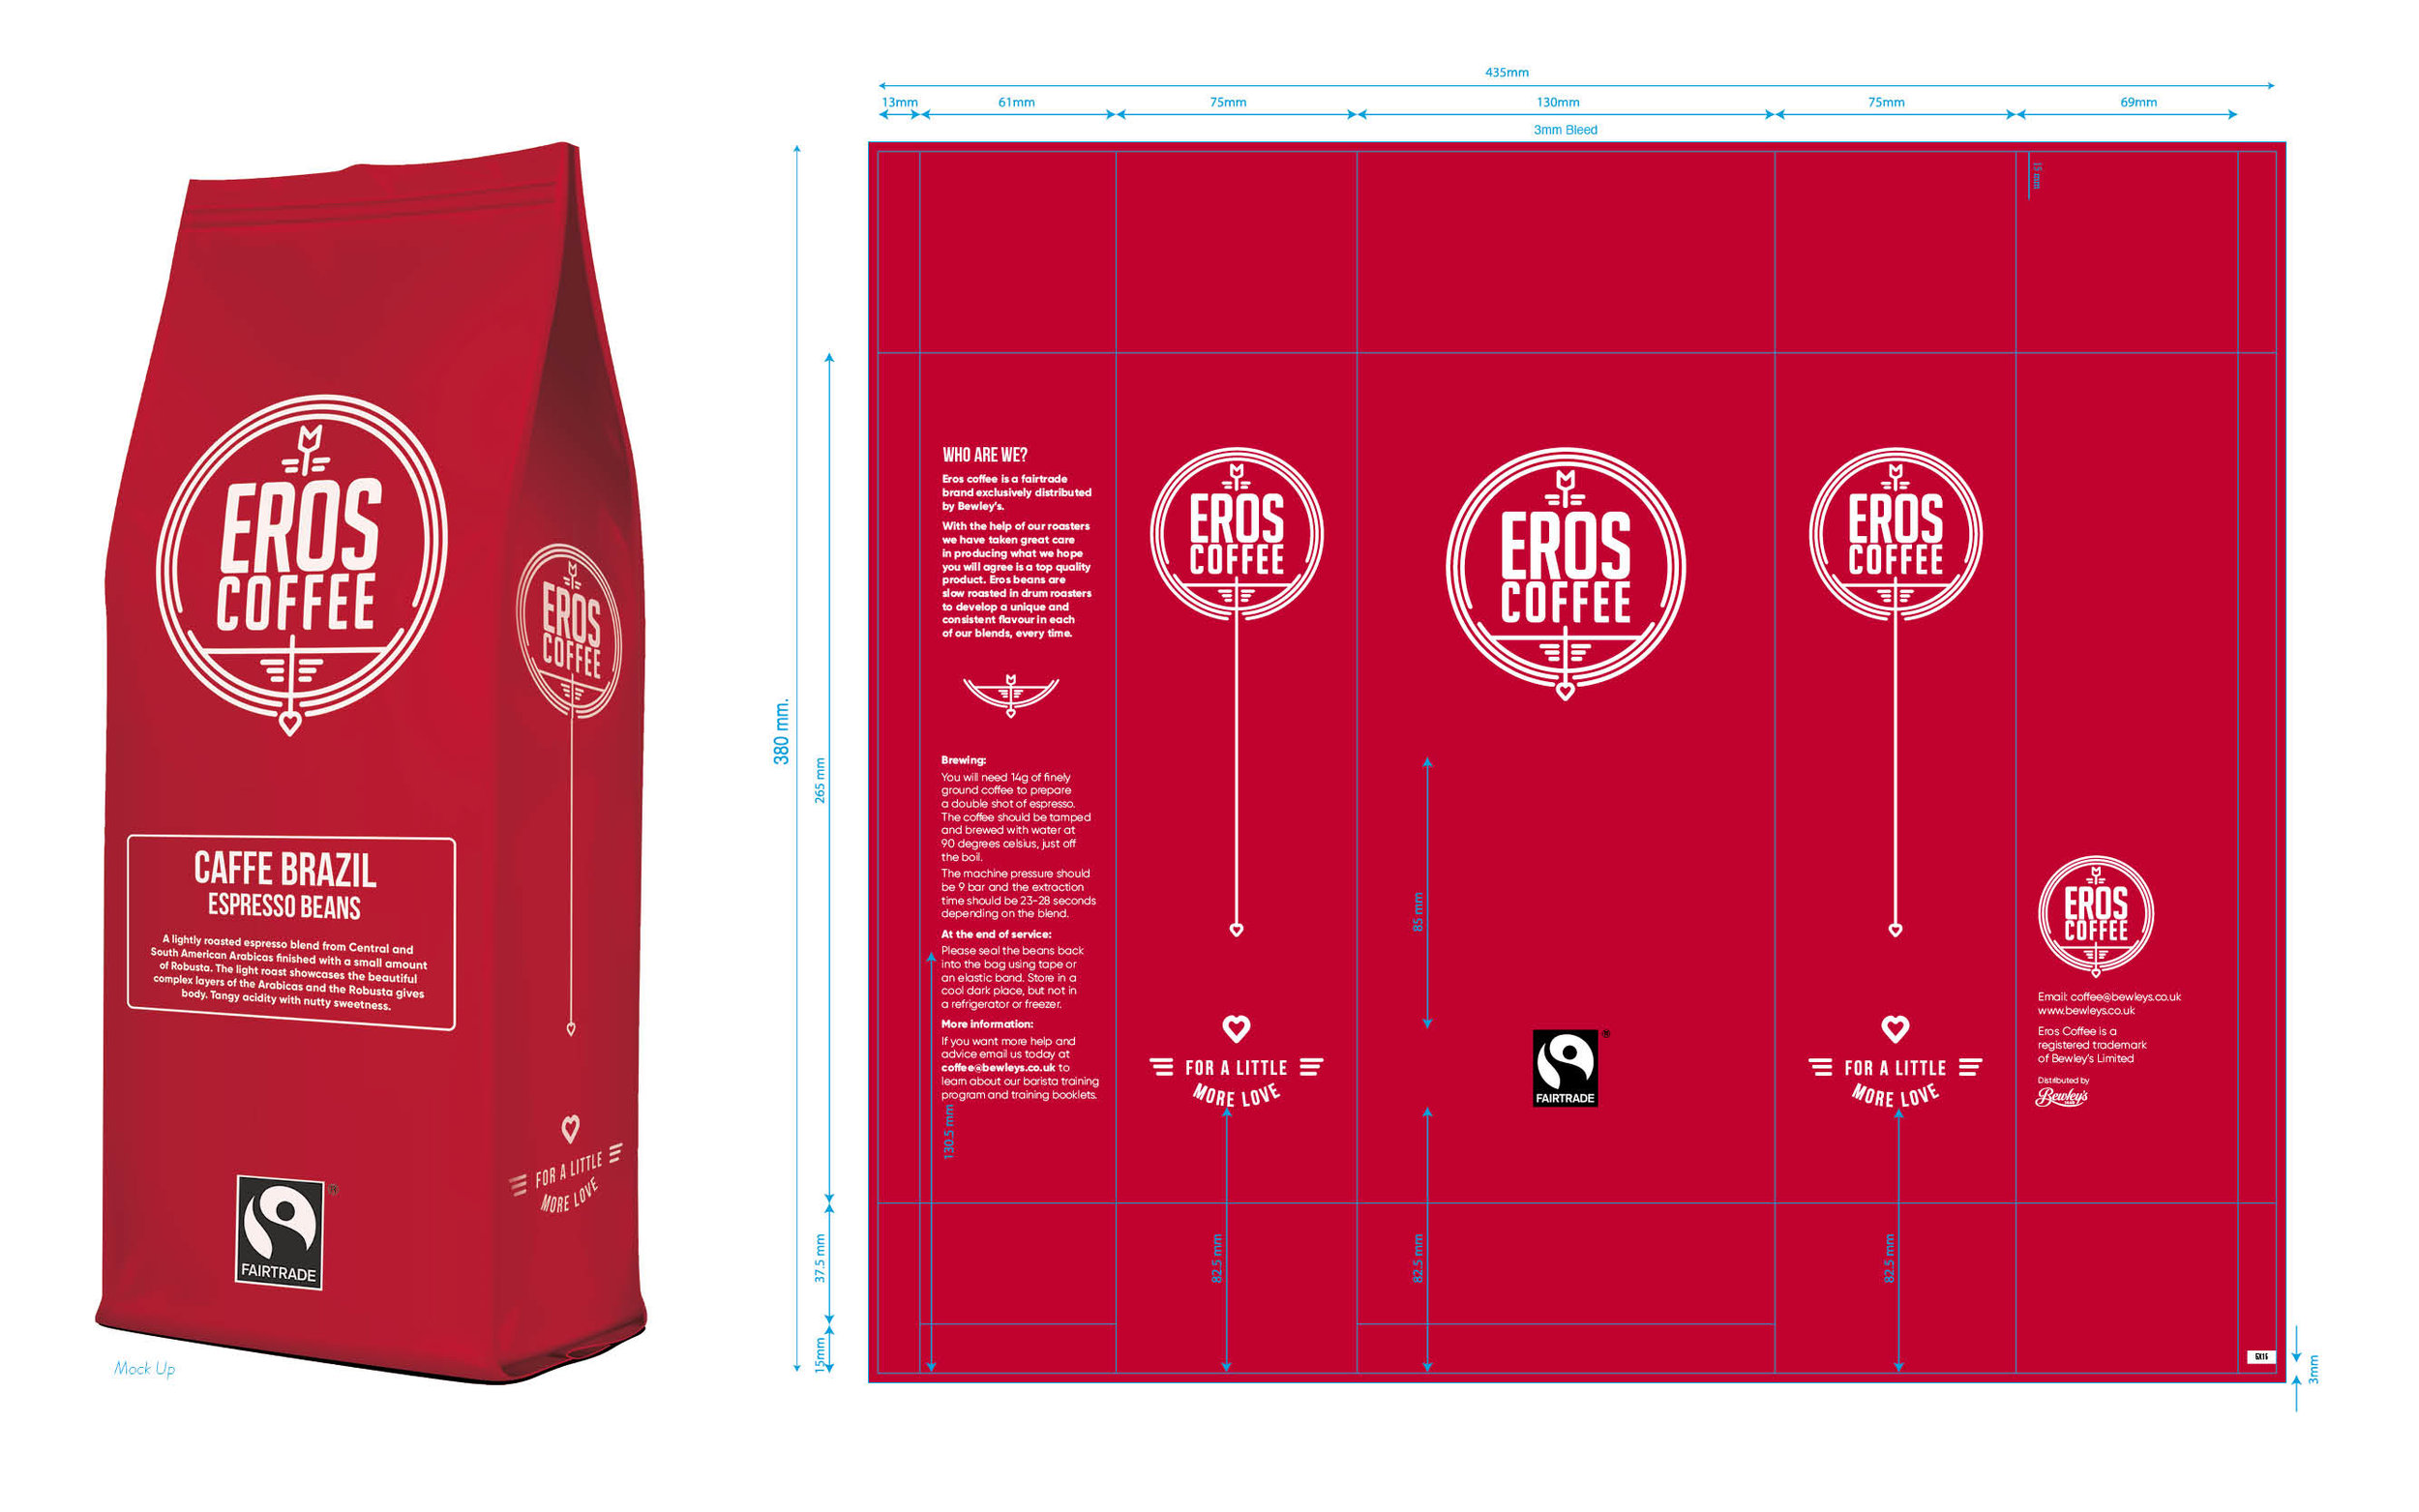 EROS COFFEE PACKAGING UPDATE